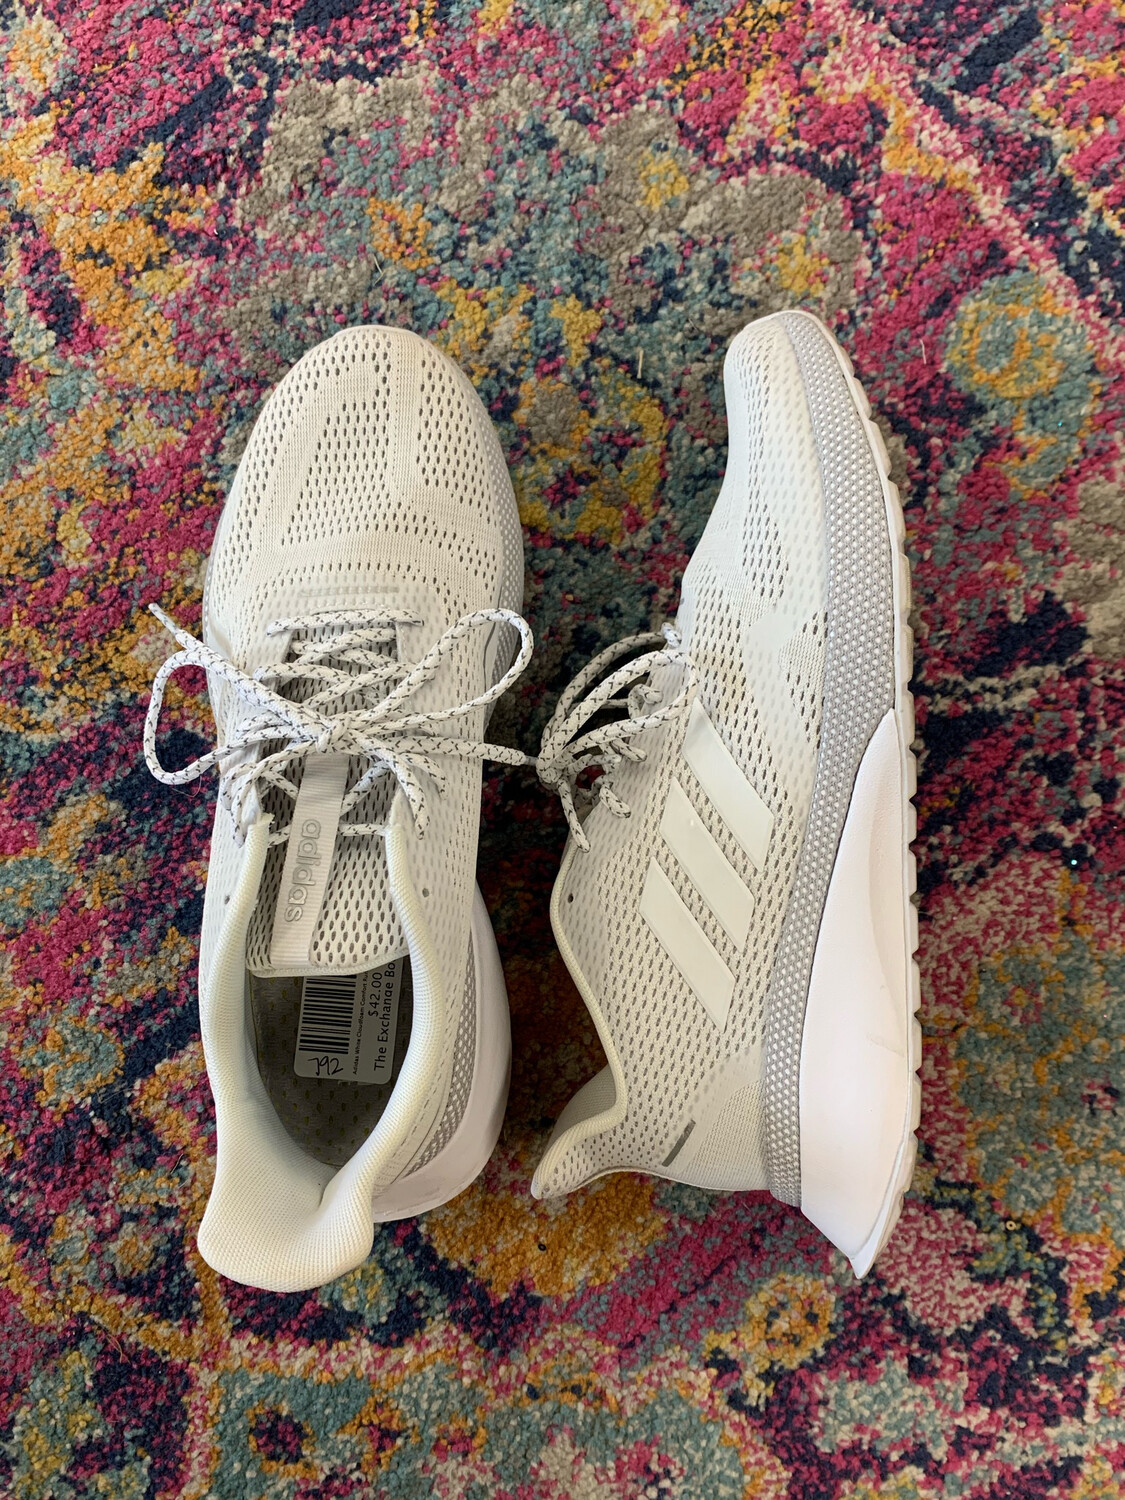 Adidas White Cloudfoam Comfort Running Shoes - Size 8.5